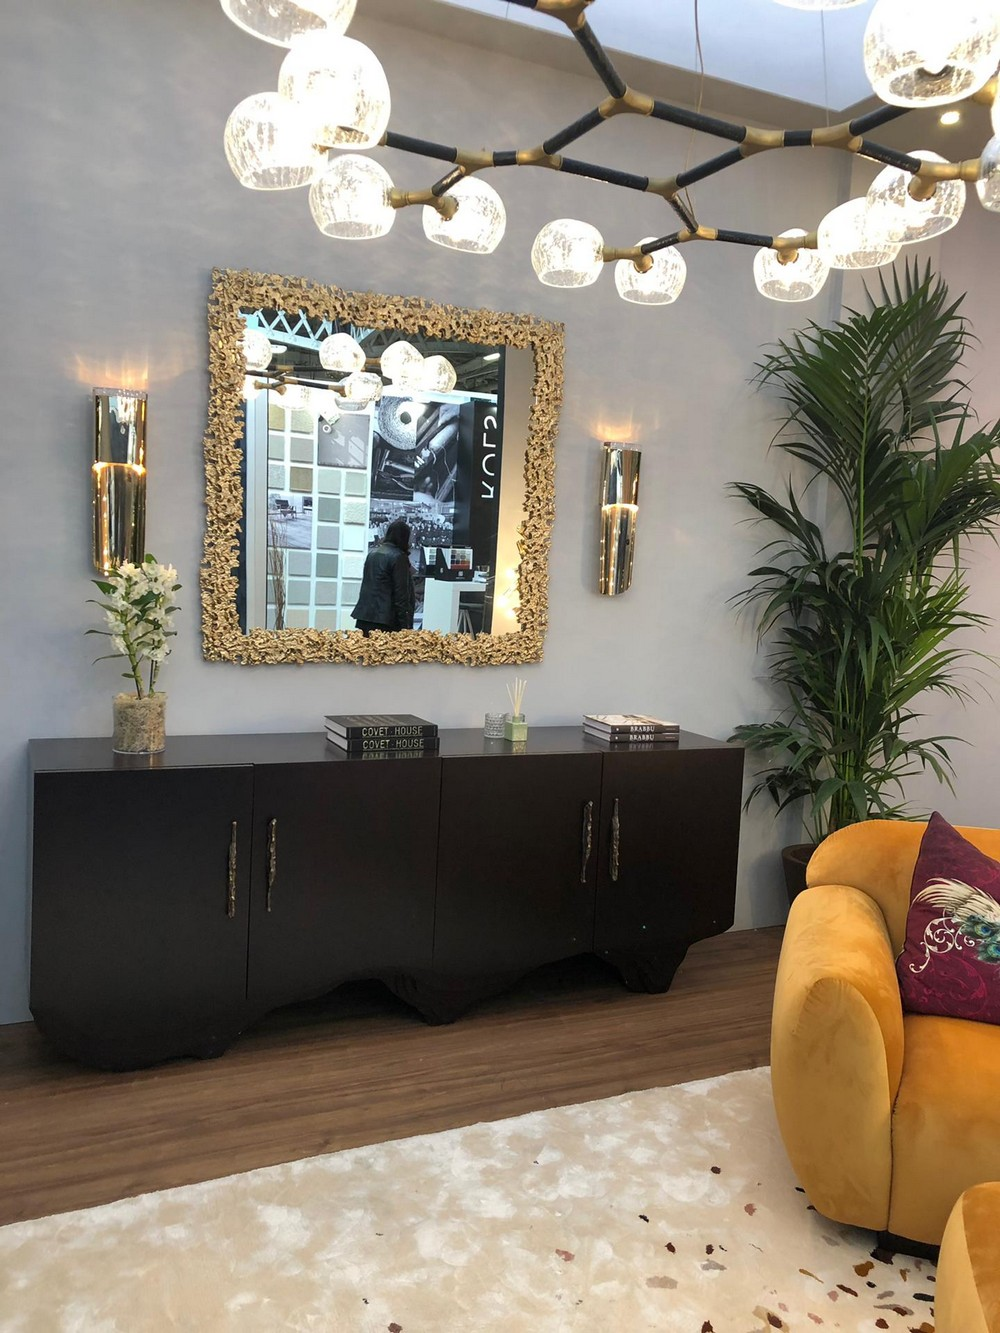 CovetED Unveiled The Best Home Decor Inspirations From Decorex 2019 decorex CovetED Unveiled The Best Home Decor Inspirations From Decorex 2019 CovetED Unveiled The Best Home Decor Inspirations From Decorex 2019 4